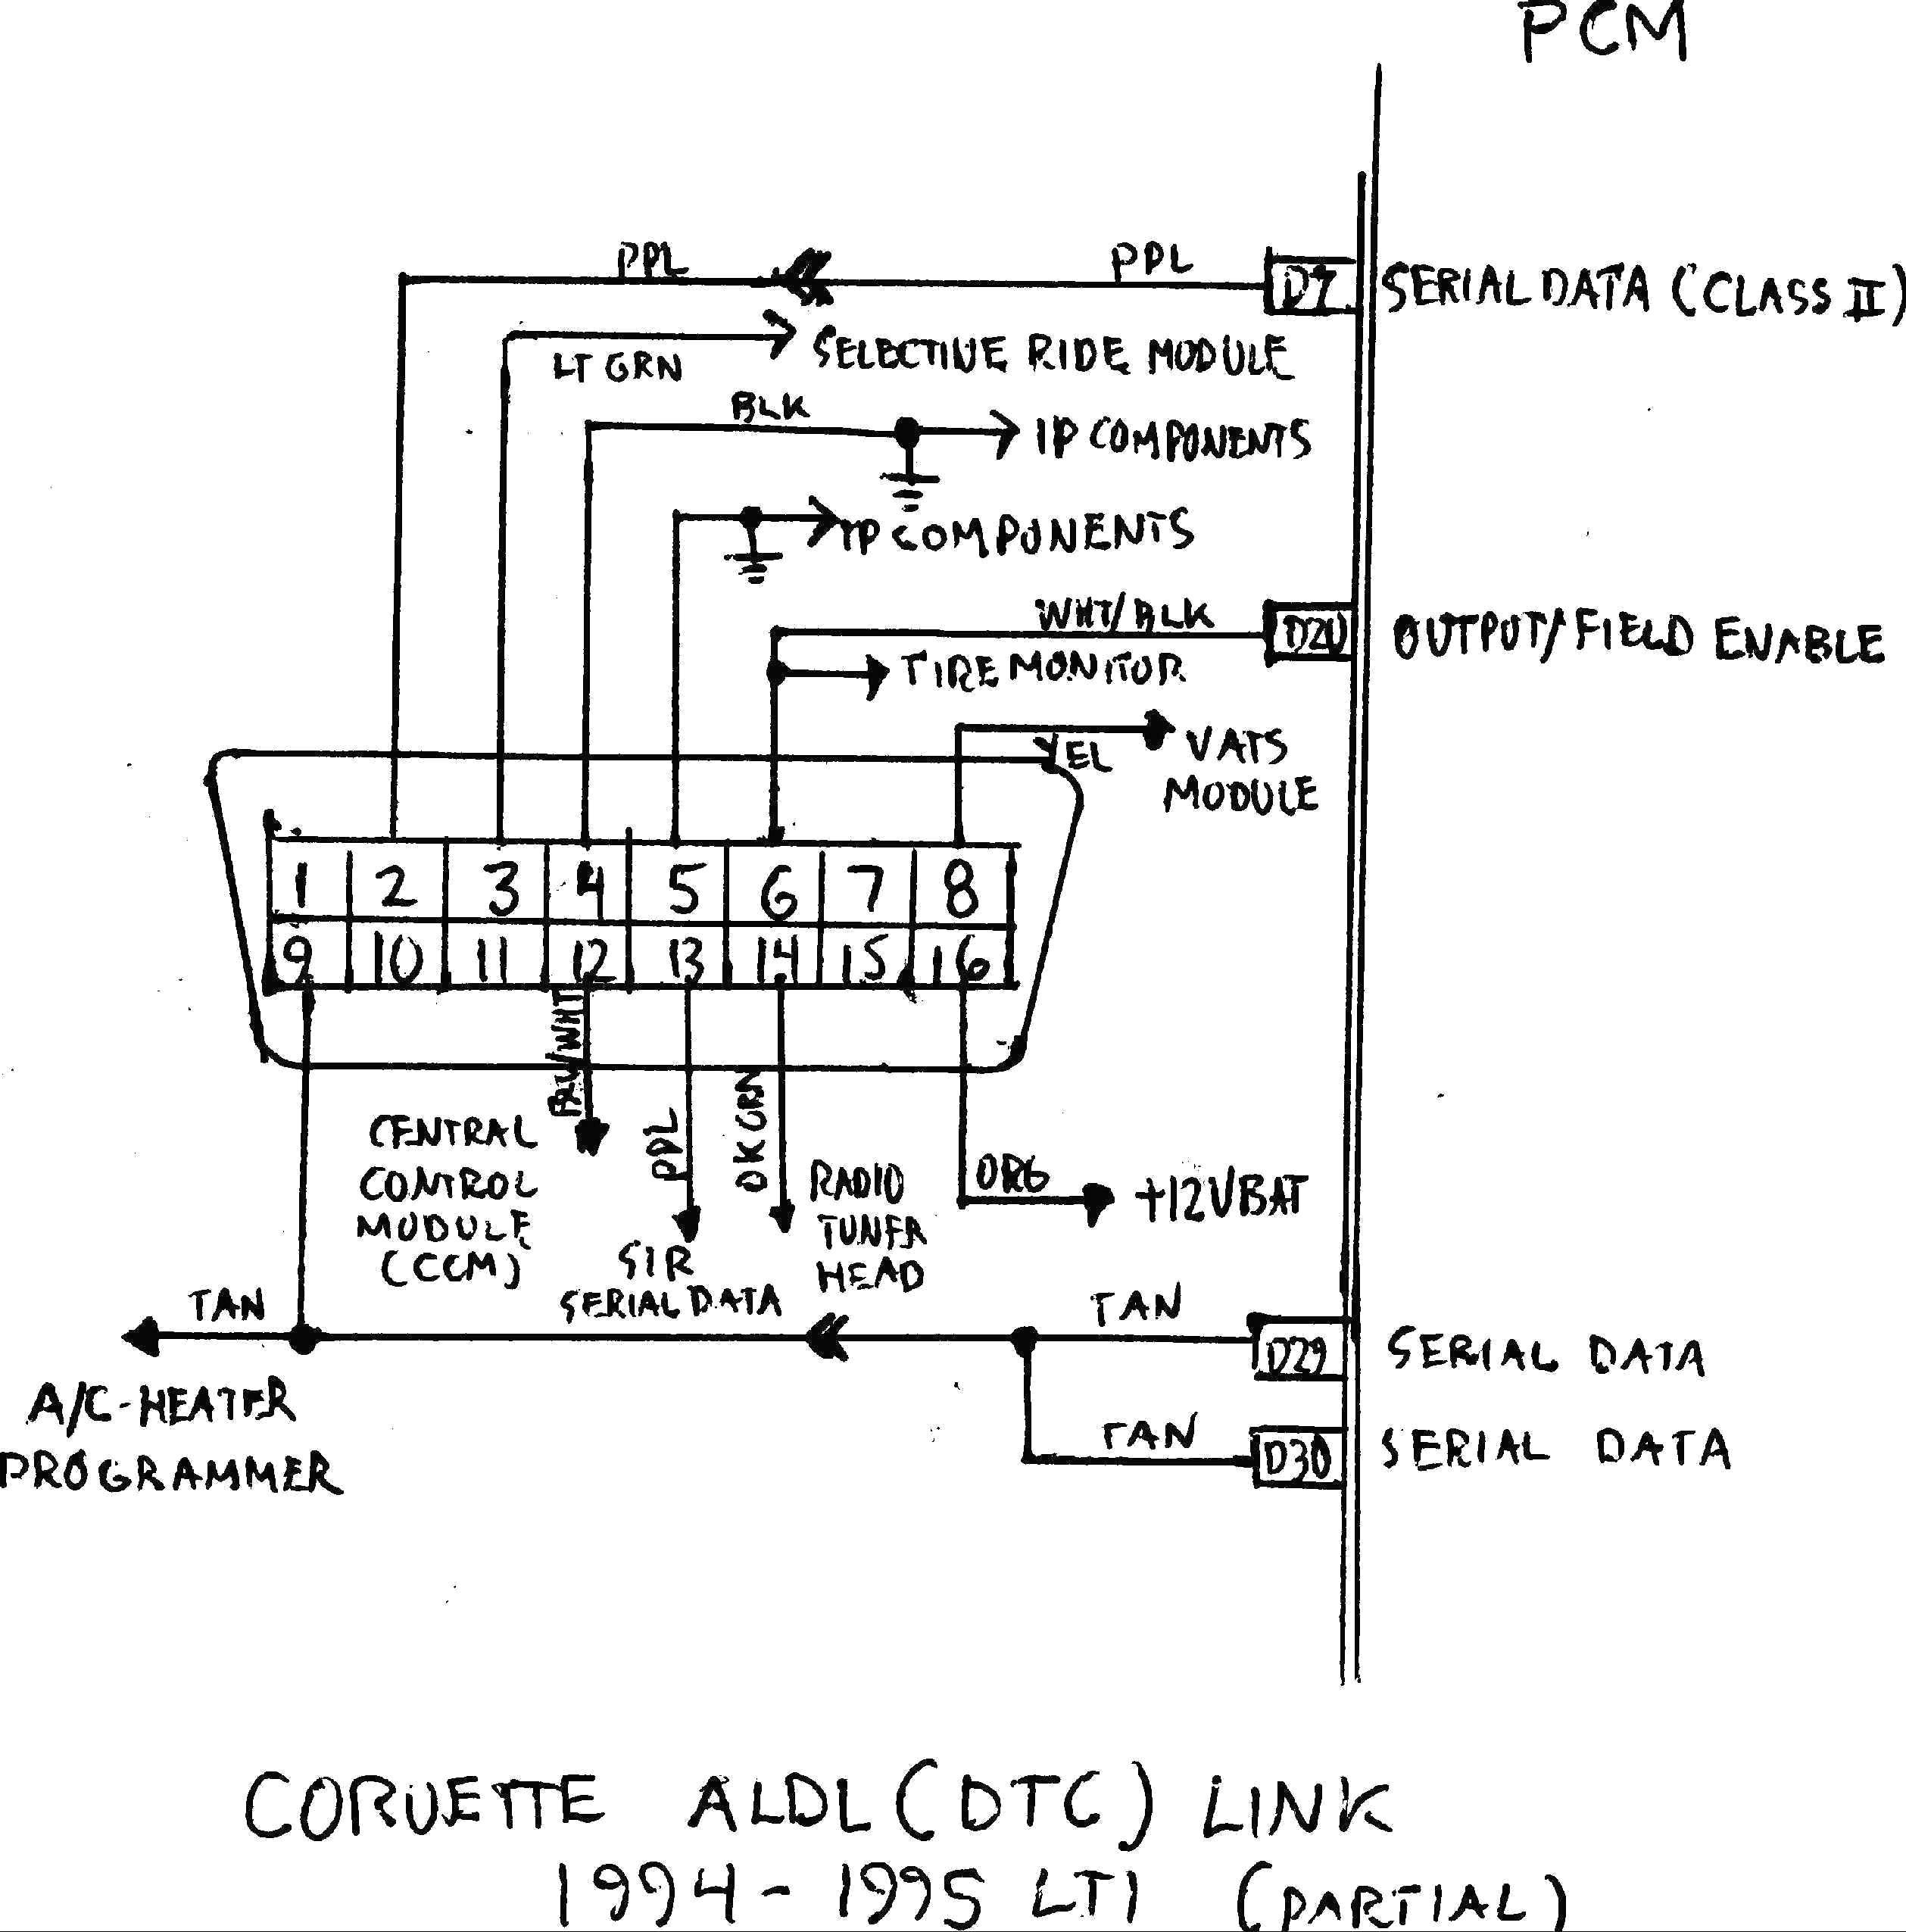 Chicago Pneumatic Wiring Diagram Libraries 2010 Prius Obd Ii Schematic Dataobd Third Level